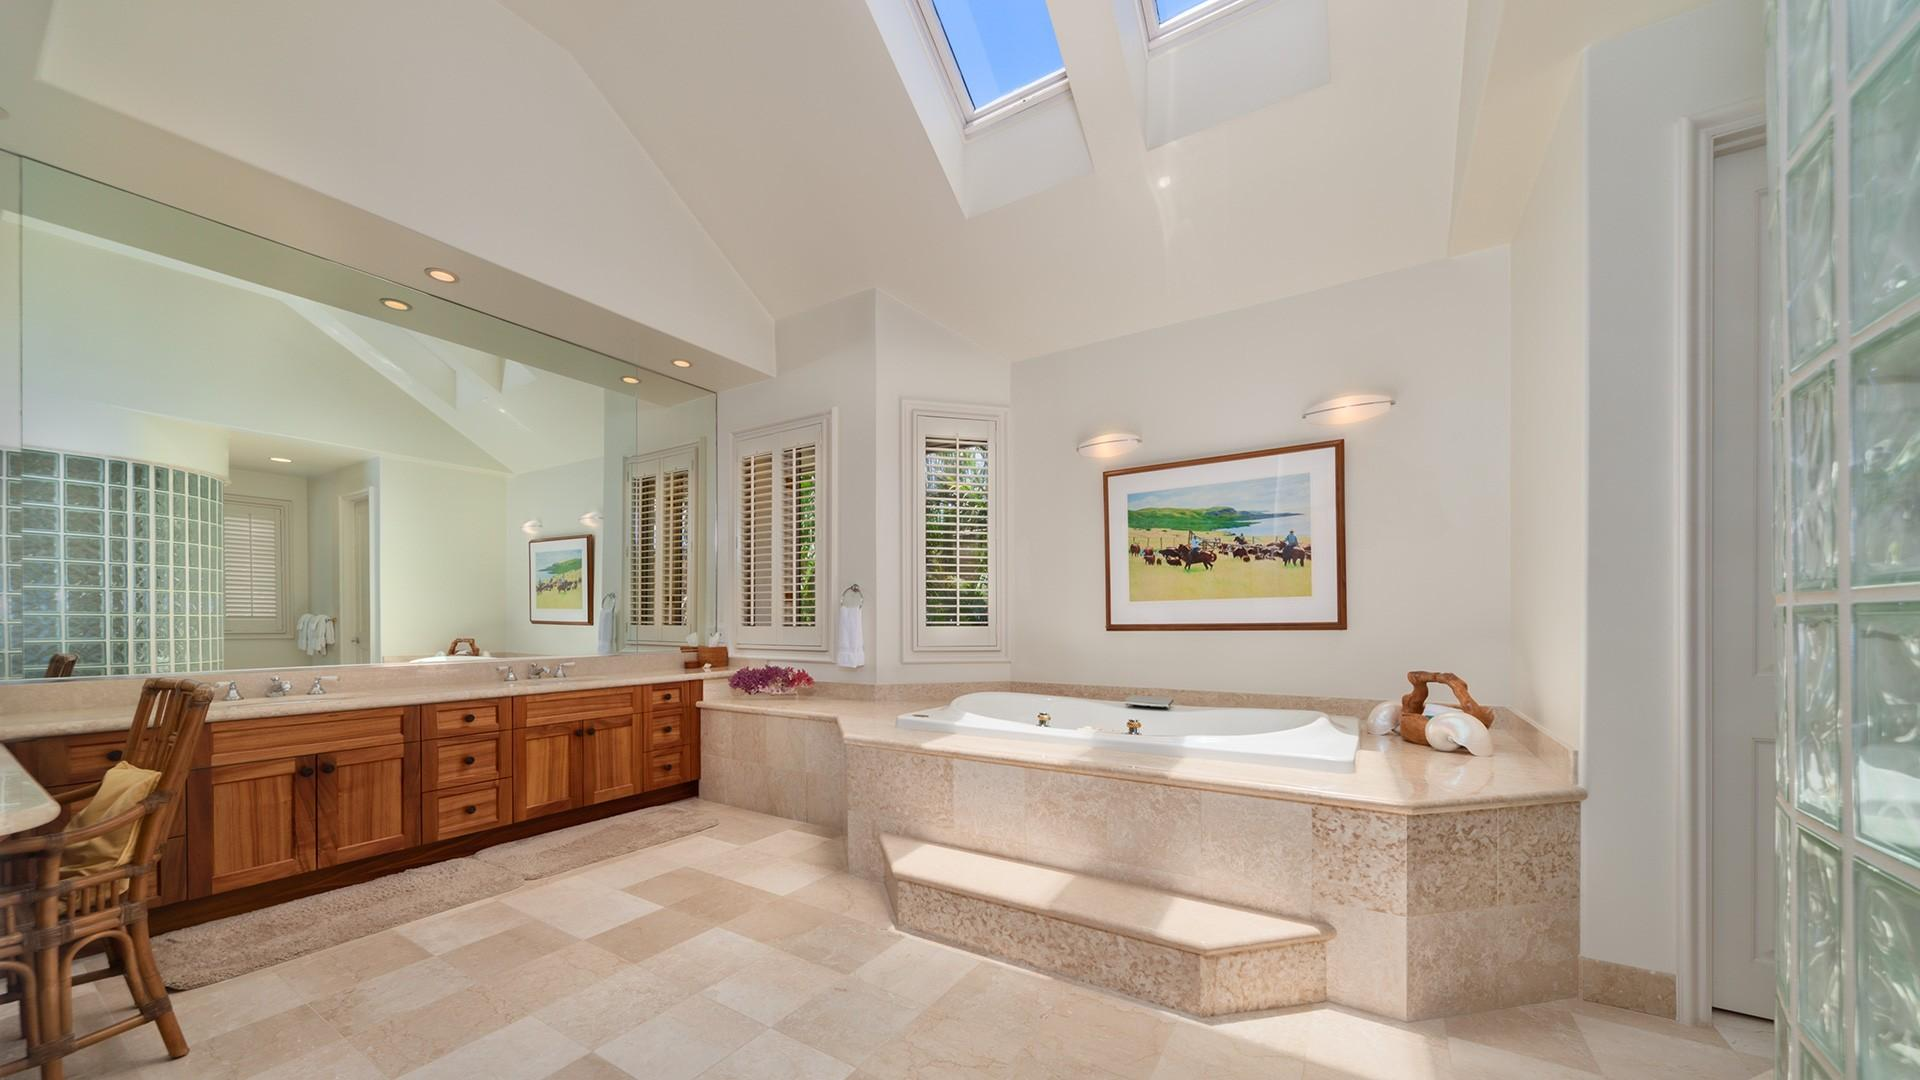 The large master bath is outfitted with dual sinks, a soaking tub, and a vanity area.